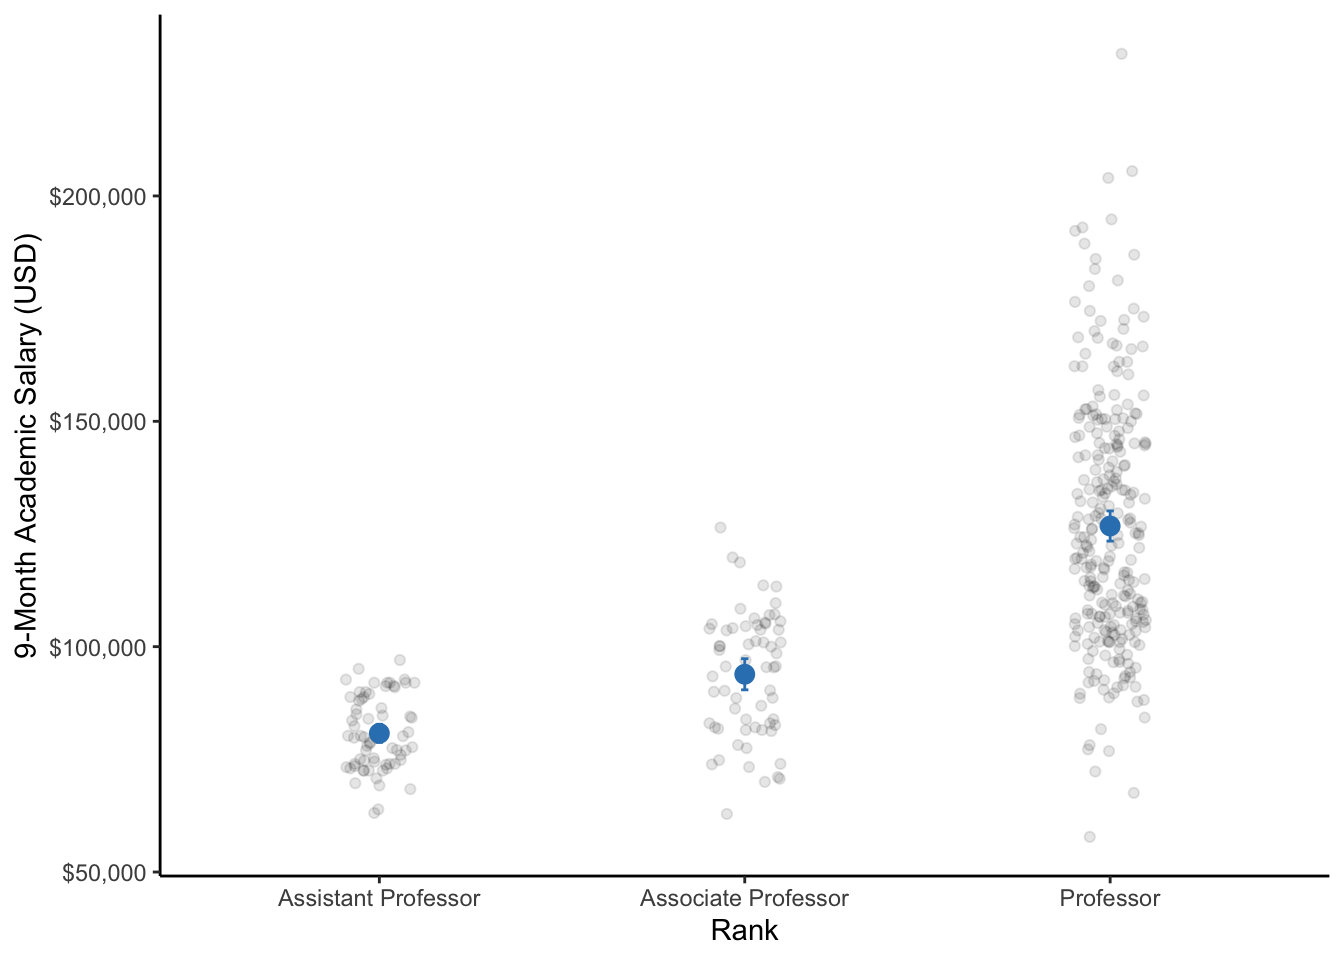 A dot plot of the 9-month academic salaries of professors by their rank within the university (i.e., assistant professor, associate professor, and professor). Respectively for each rank, the dot represents the mean salary and the bars represent the 95% CI.  Note: The data points are only jittered (dispersed) for easier visualization of all data points.